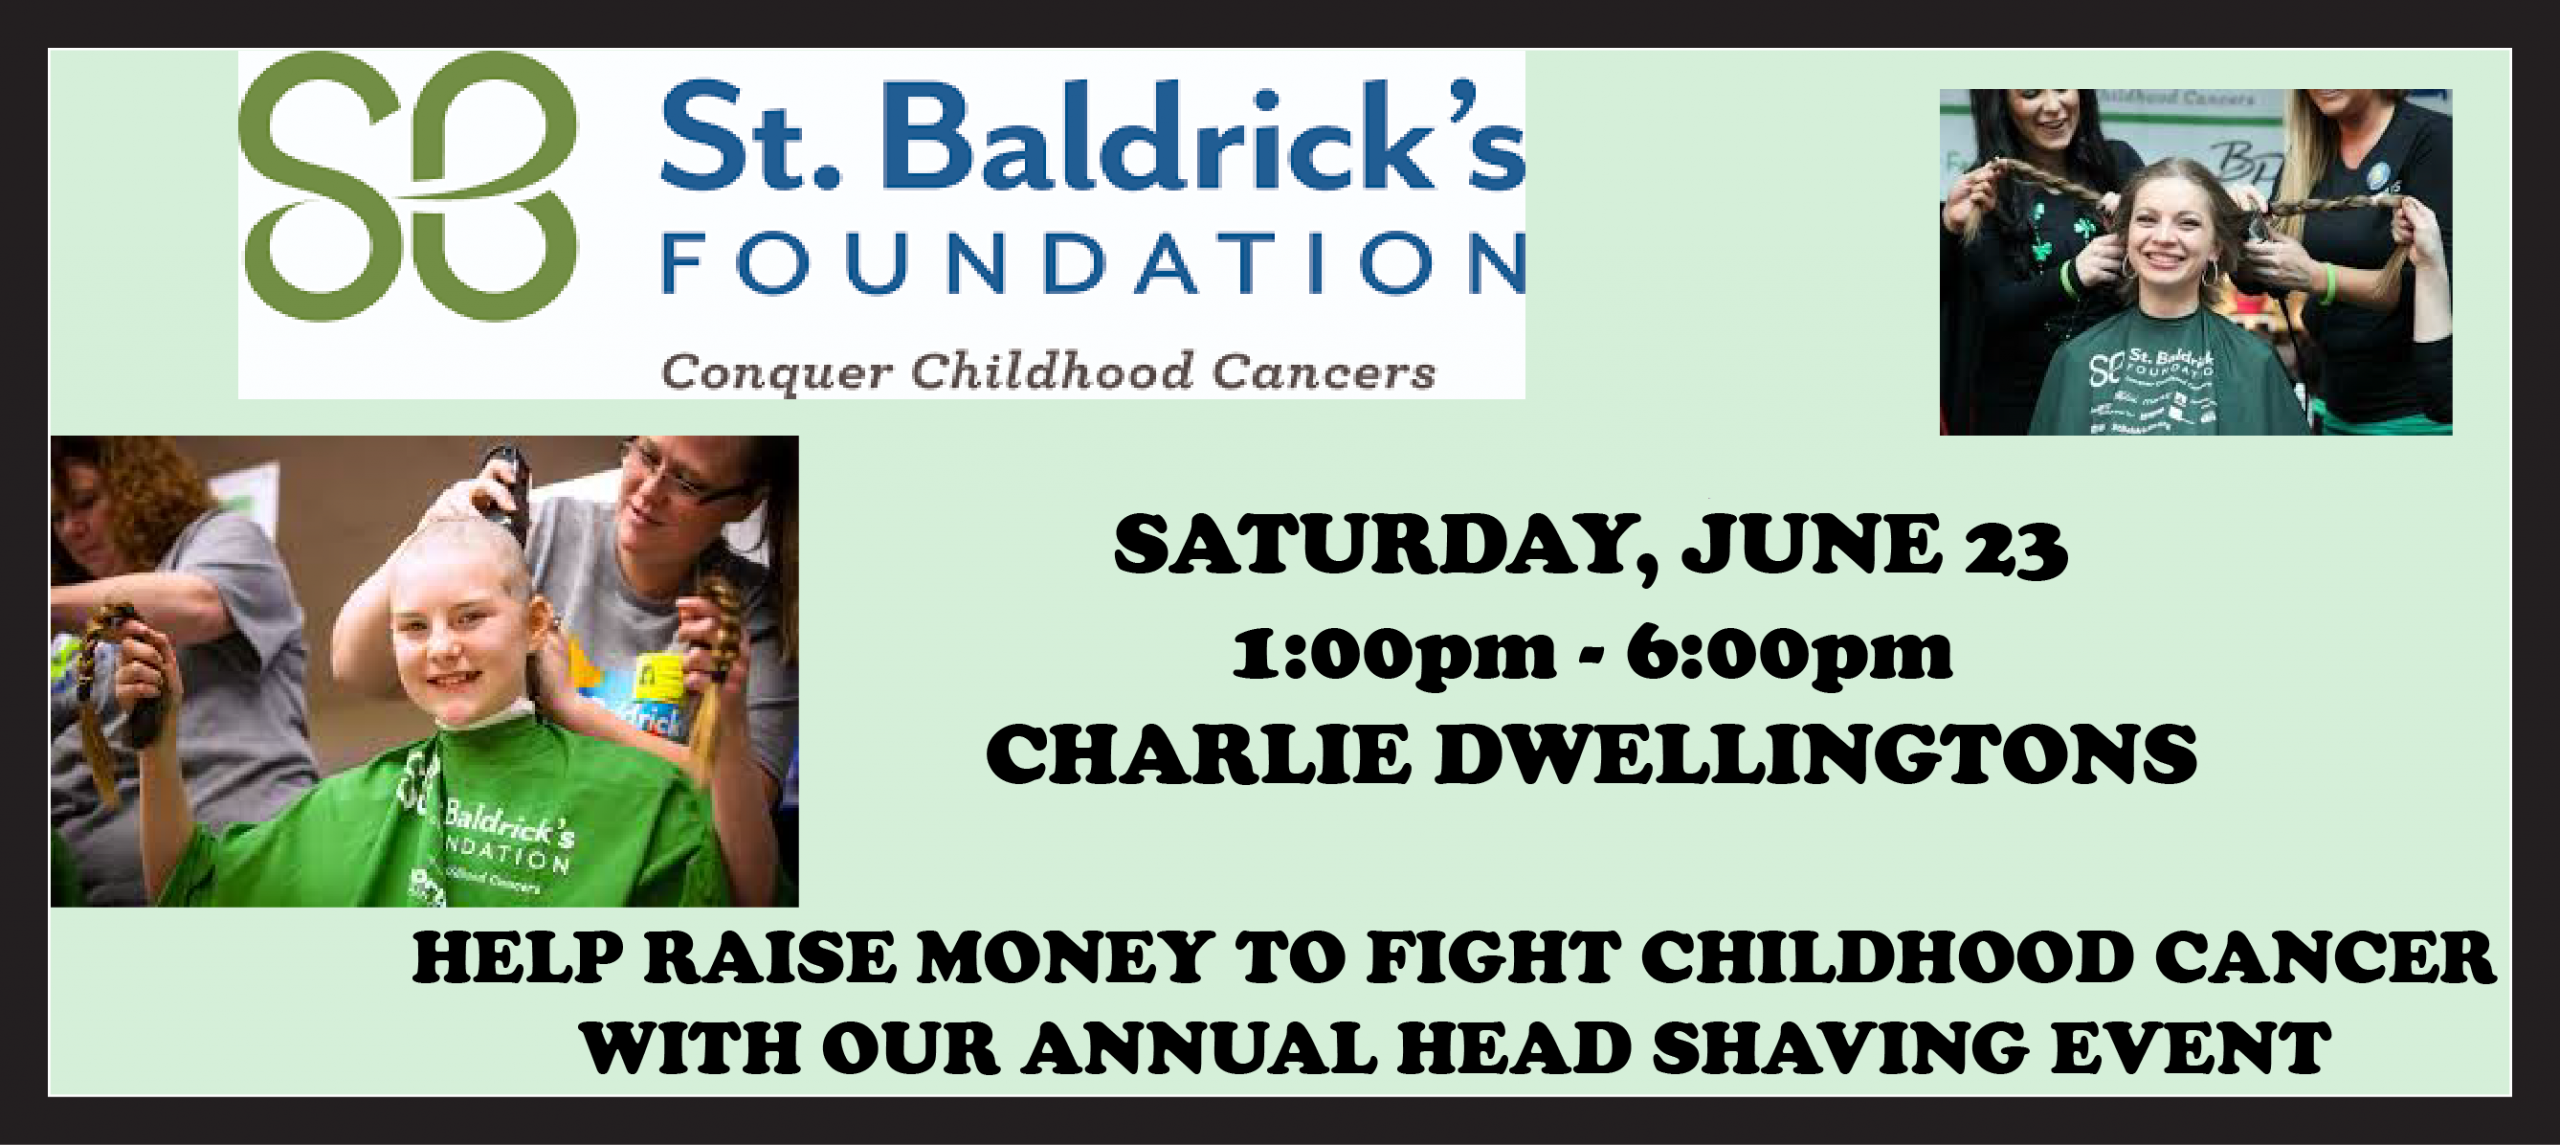 Feature: https://www.stbaldricks.org/events/mypage/7594/2018